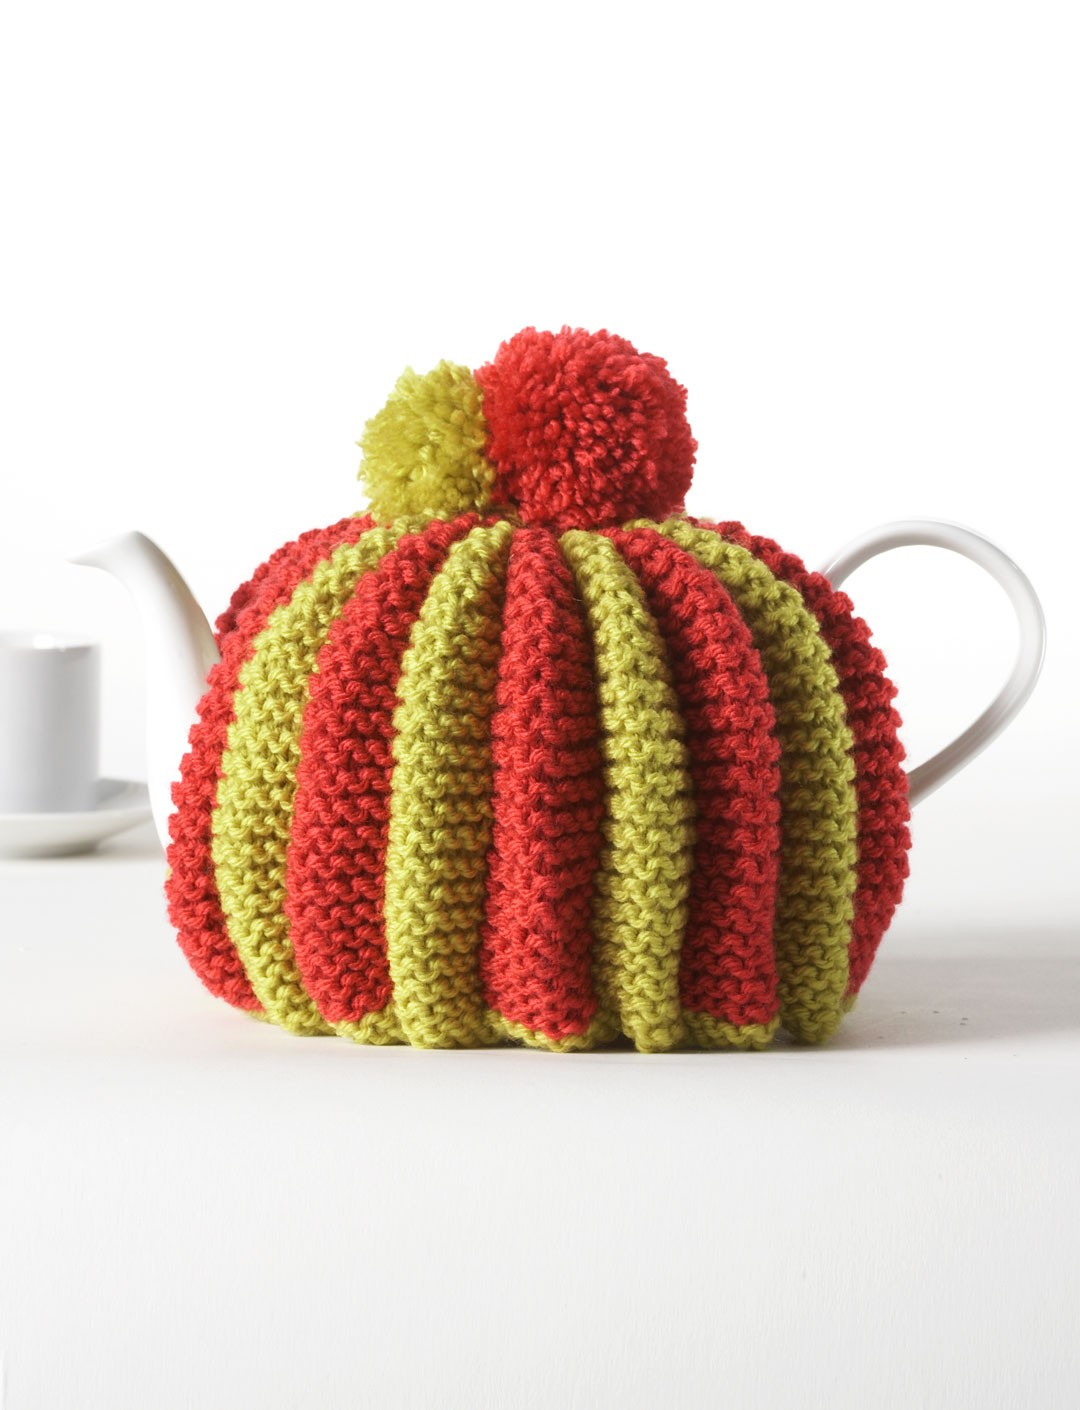 Knitted Teapot Cosy Patterns : Bernat Knitted Pleated Tea Cozy, Knit Pattern Yarnspirations